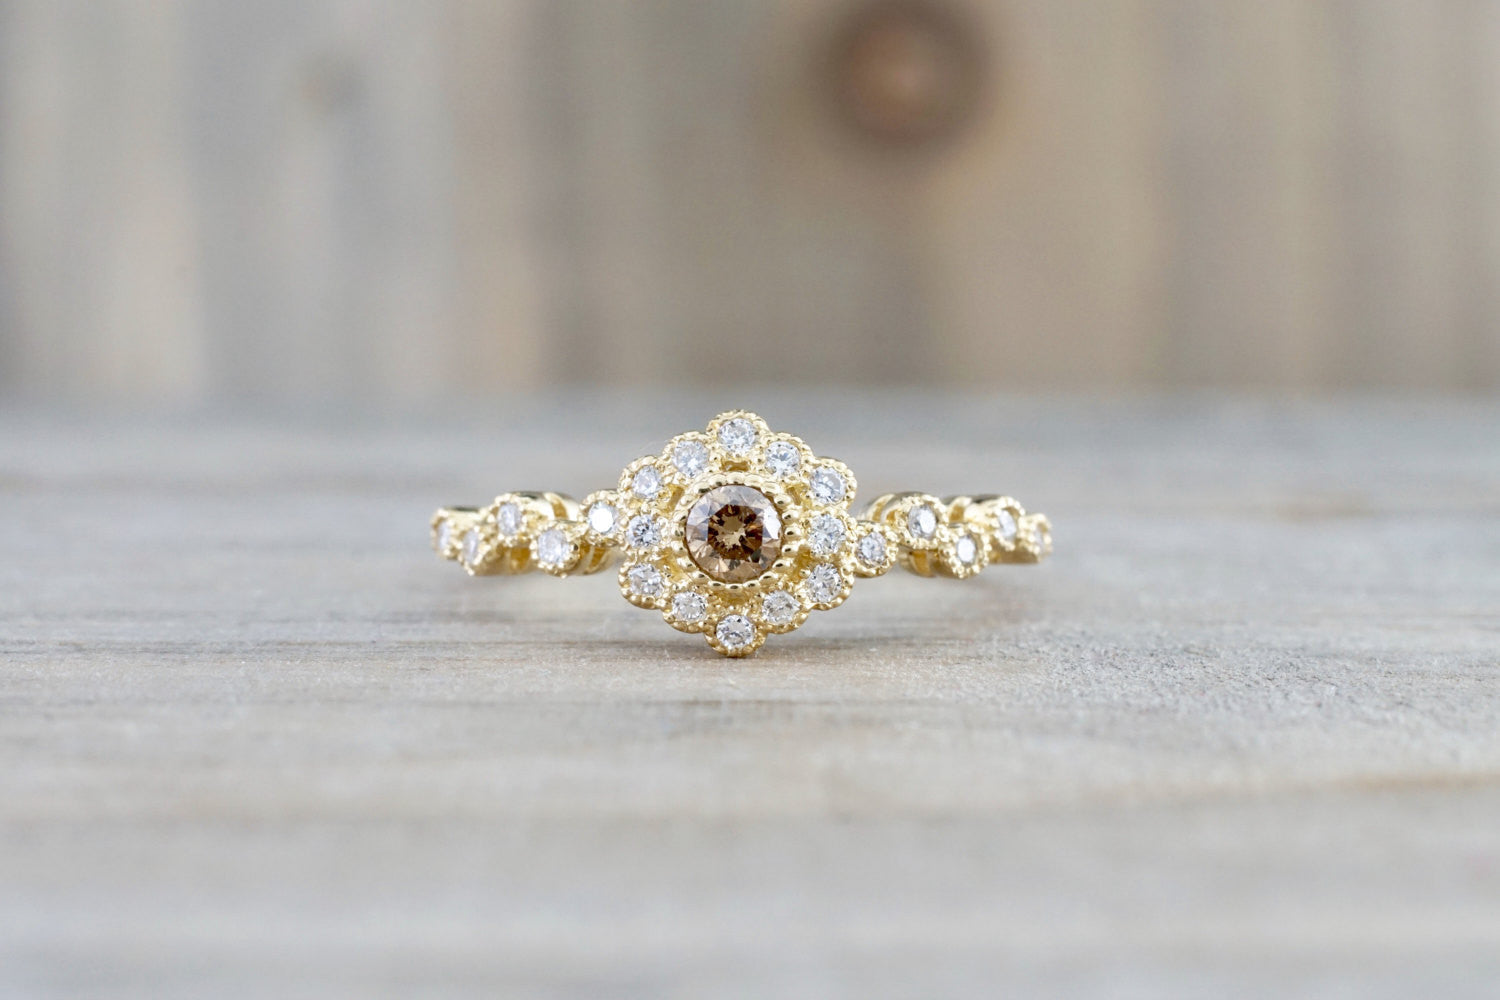 Vermont 14K Yellow Gold Classic Chocalate Diamond Engagement Wedding Promise Vintage Classic Cute Ring Band Arch Shaped